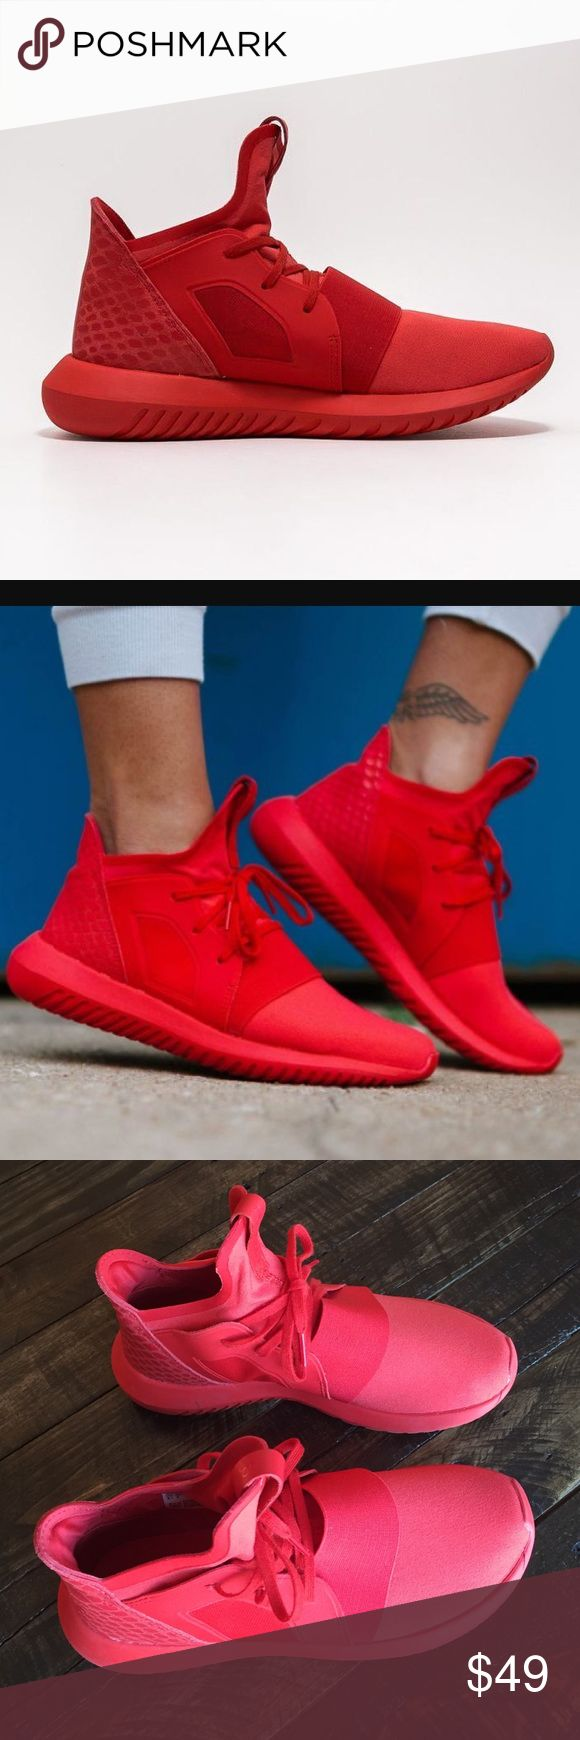 Adidas Red Sneakers Adidas Tubular Defiant sneakers. Women's size 6.5. Worn couple of times but they are in very good condition. No orig box Adidas Shoes Sneakers